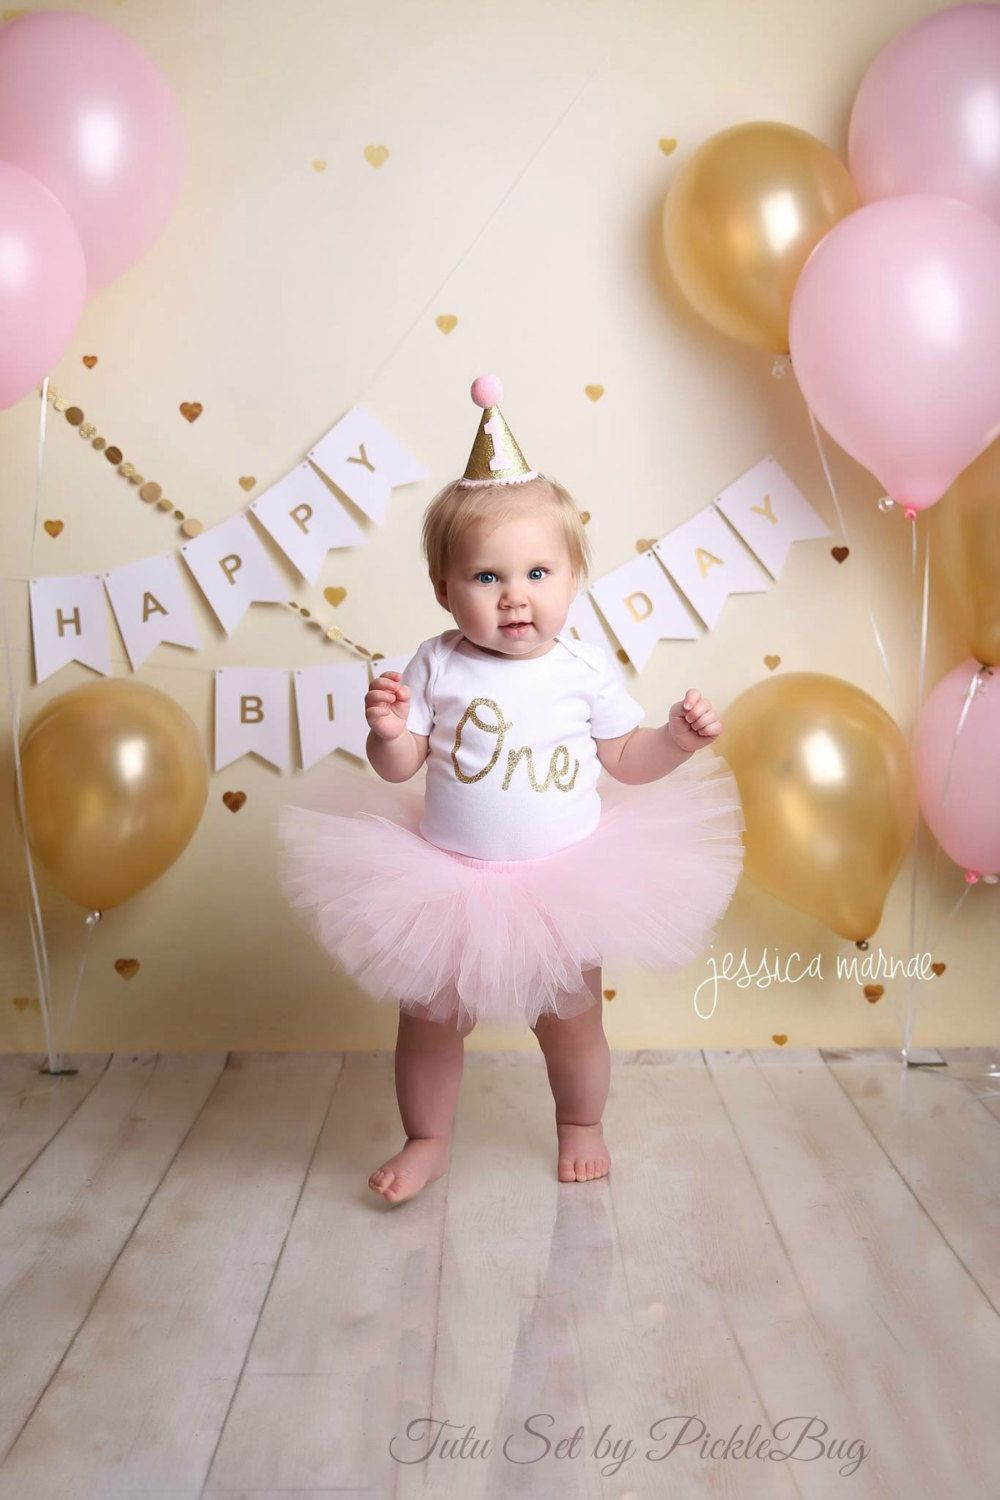 First Birthday Outfit Girl, Cake Smash Outfit Girl, Pink and Gold 1st Birthday Outfit, Birthday Cake Topper, Cake Smash Outfit Girl, Tulle #outfitswithhats